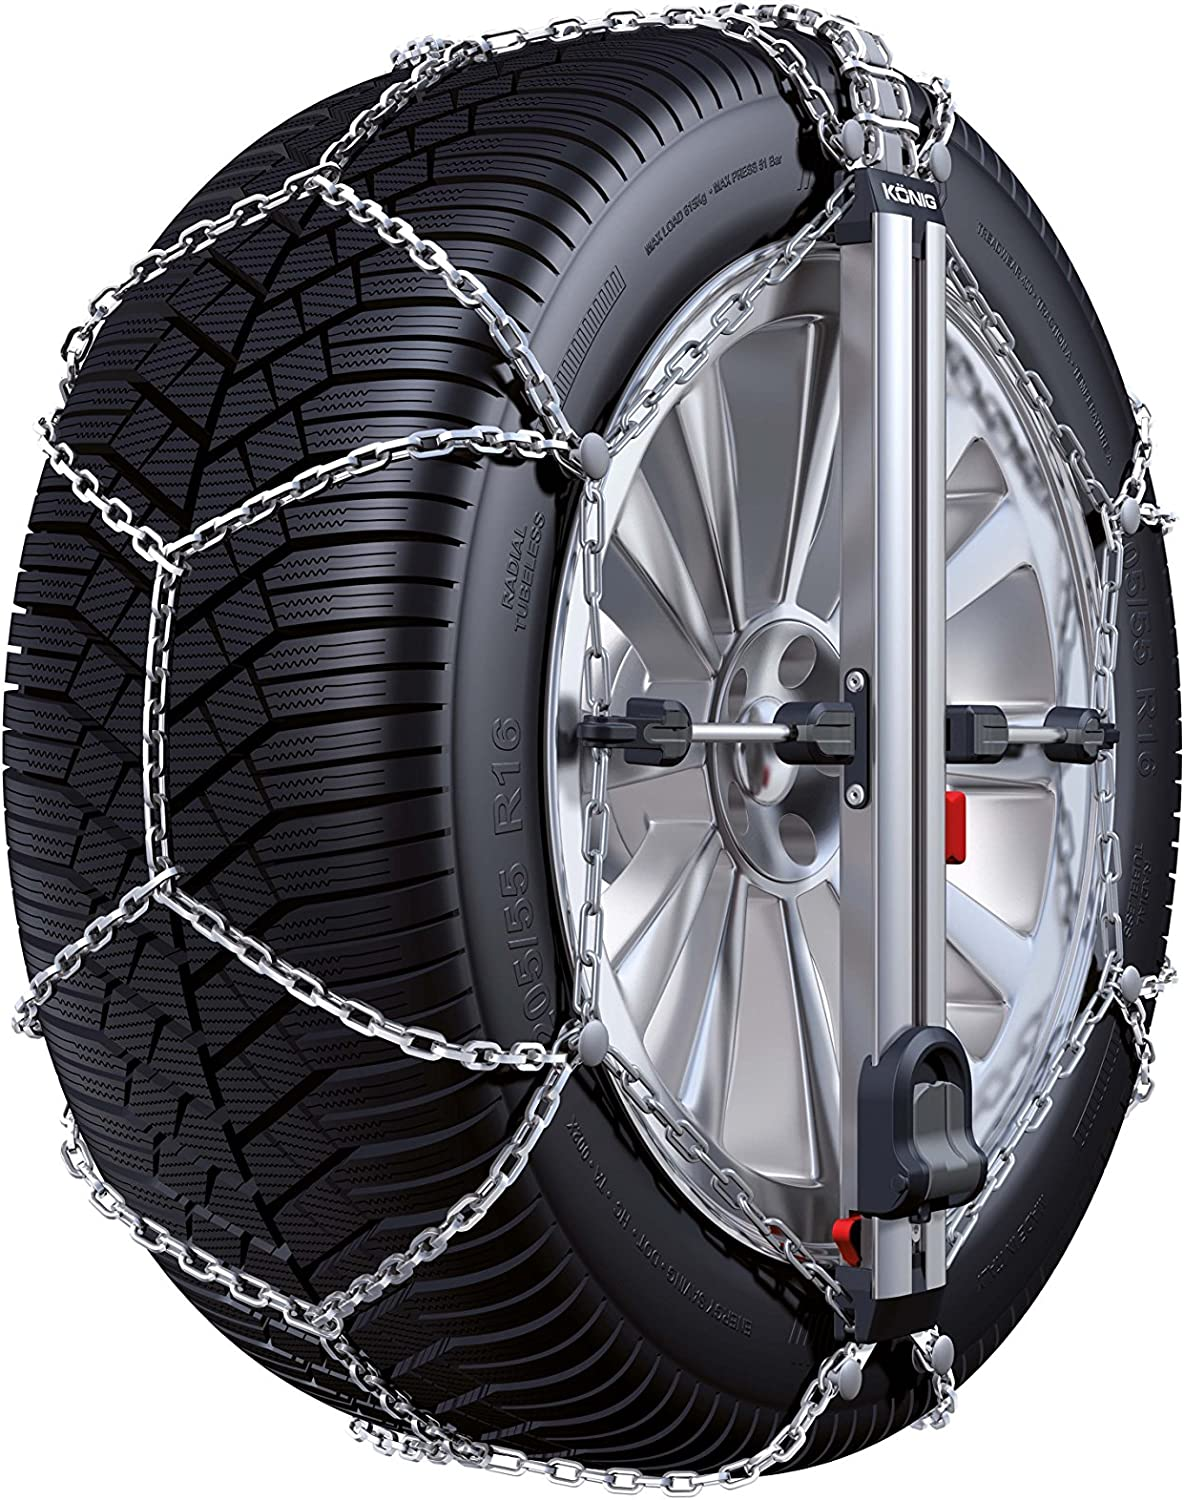 (Buying Guide): 11 Best Snow Chains for Trucks in 2021 3